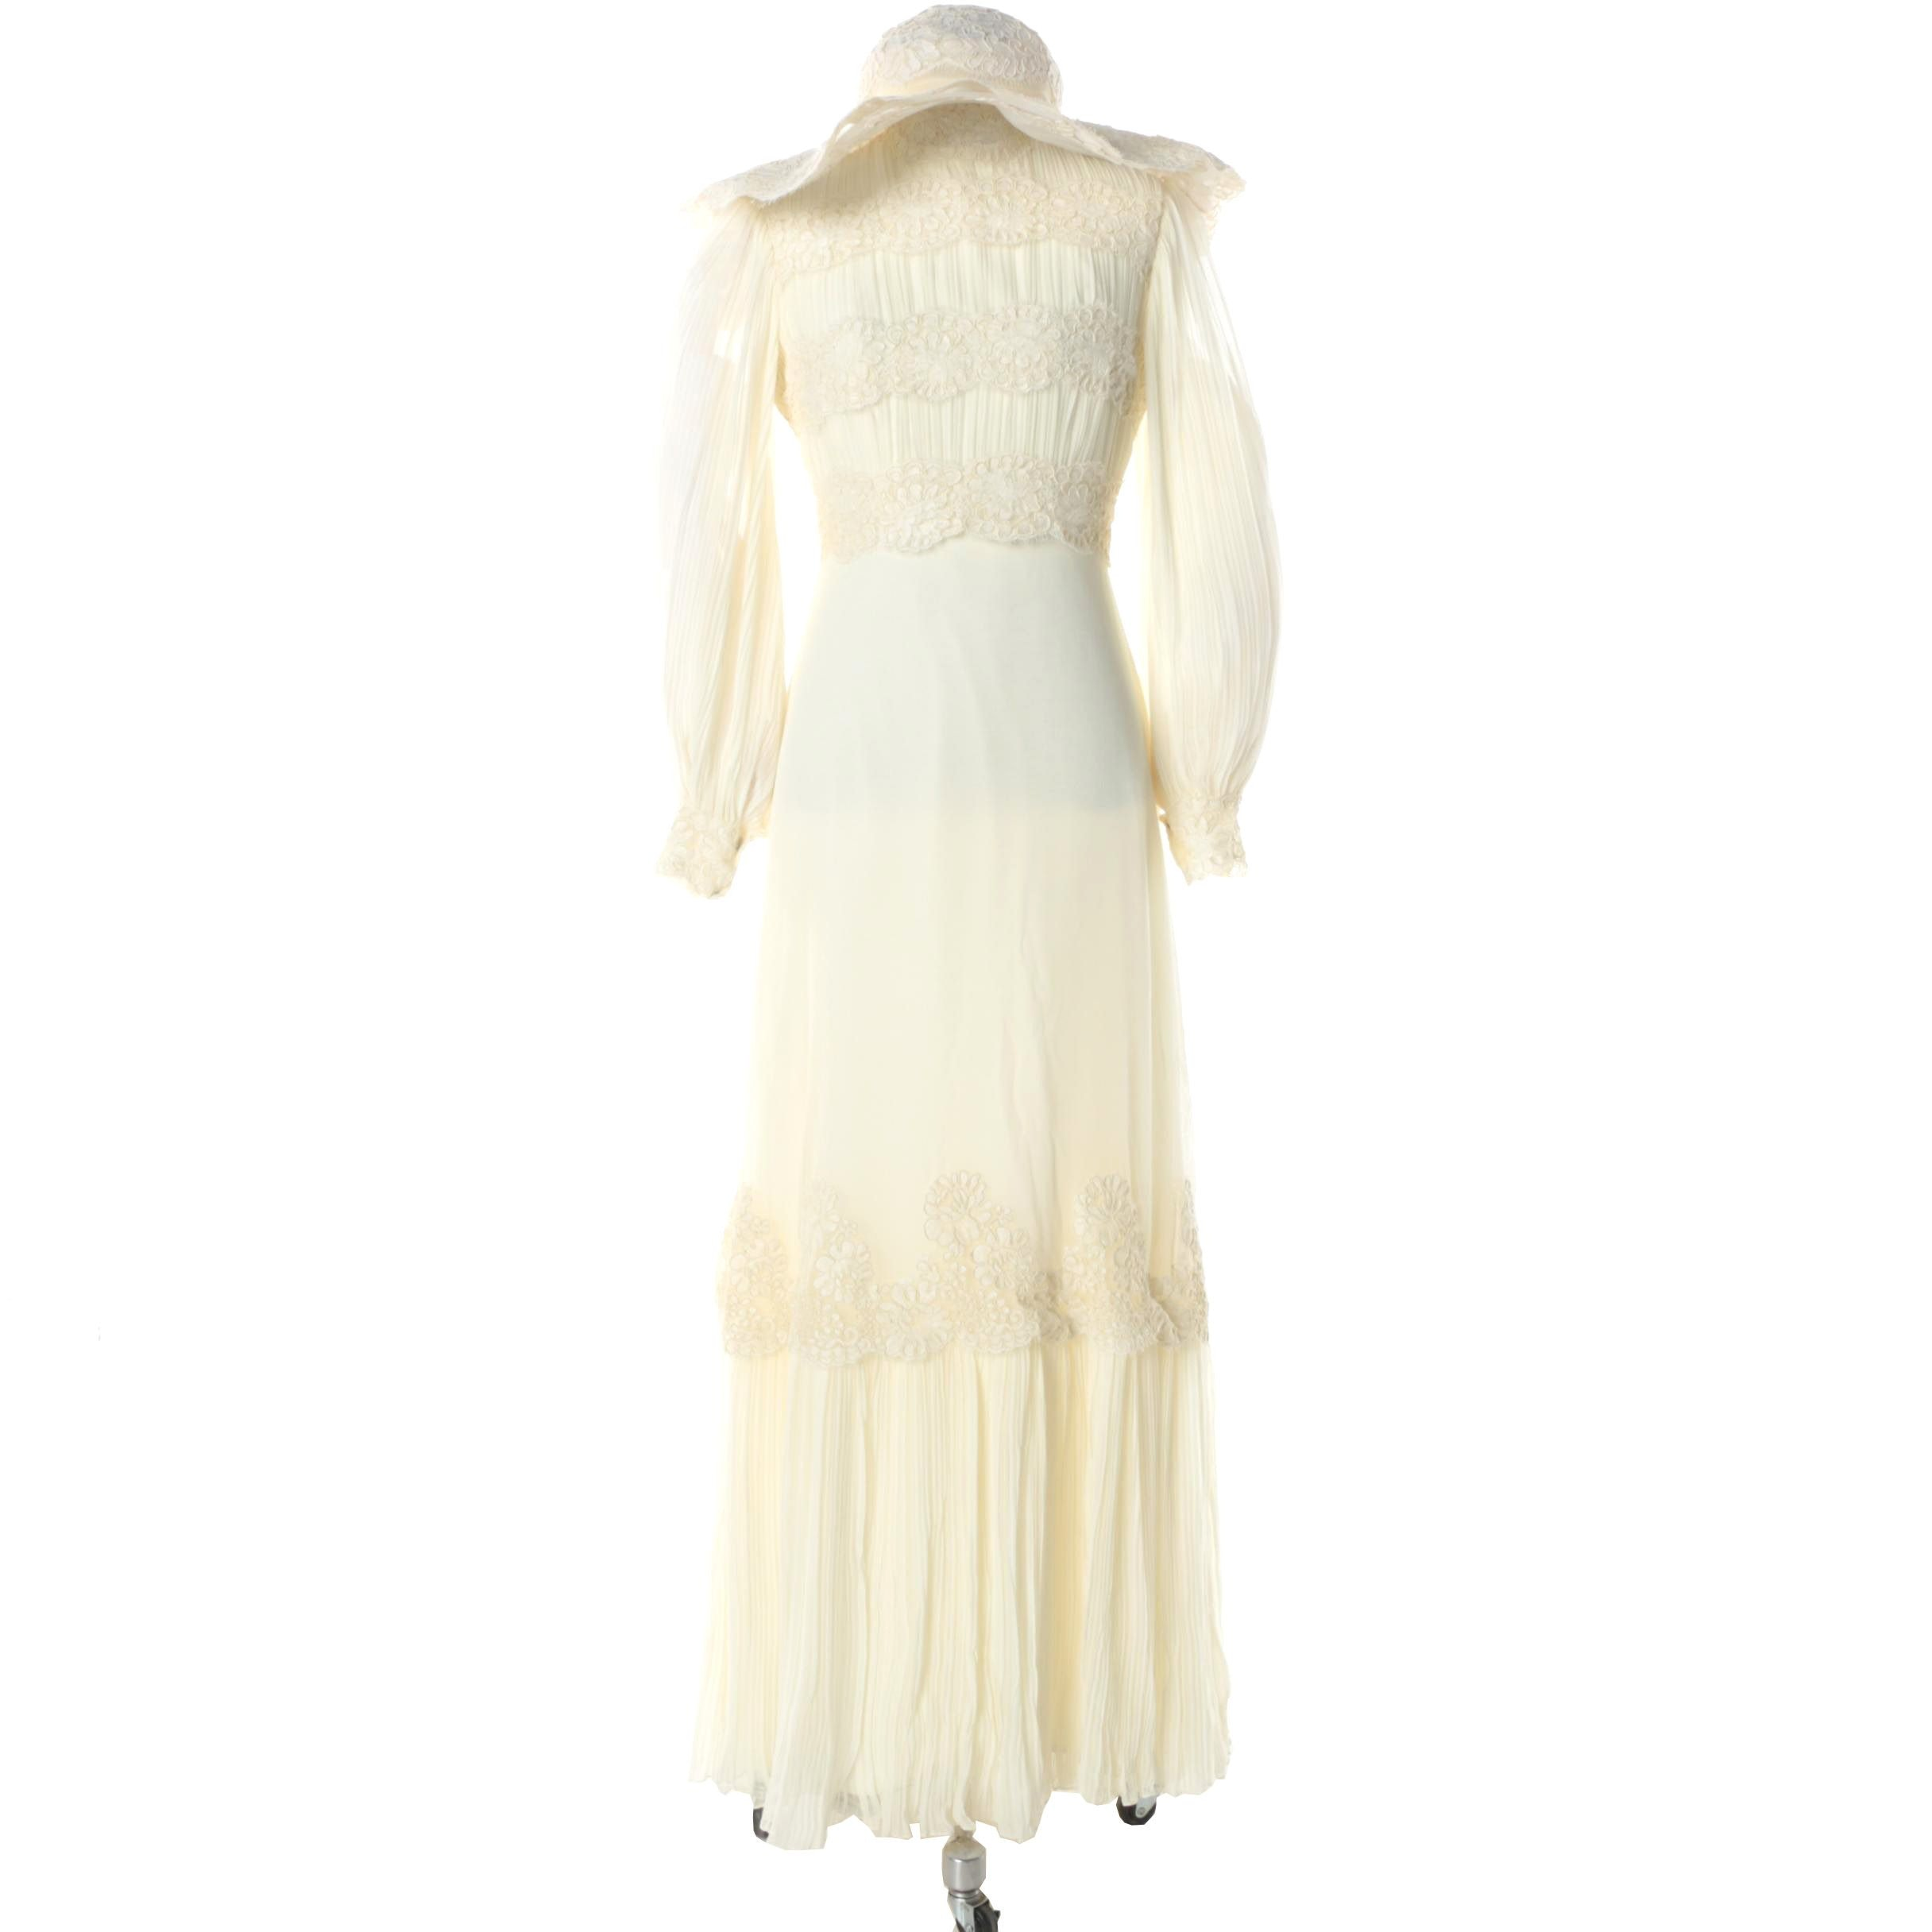 1970s Vintage Saks Fifth Avenue Wedding Dress with Wide Brimmed Hat